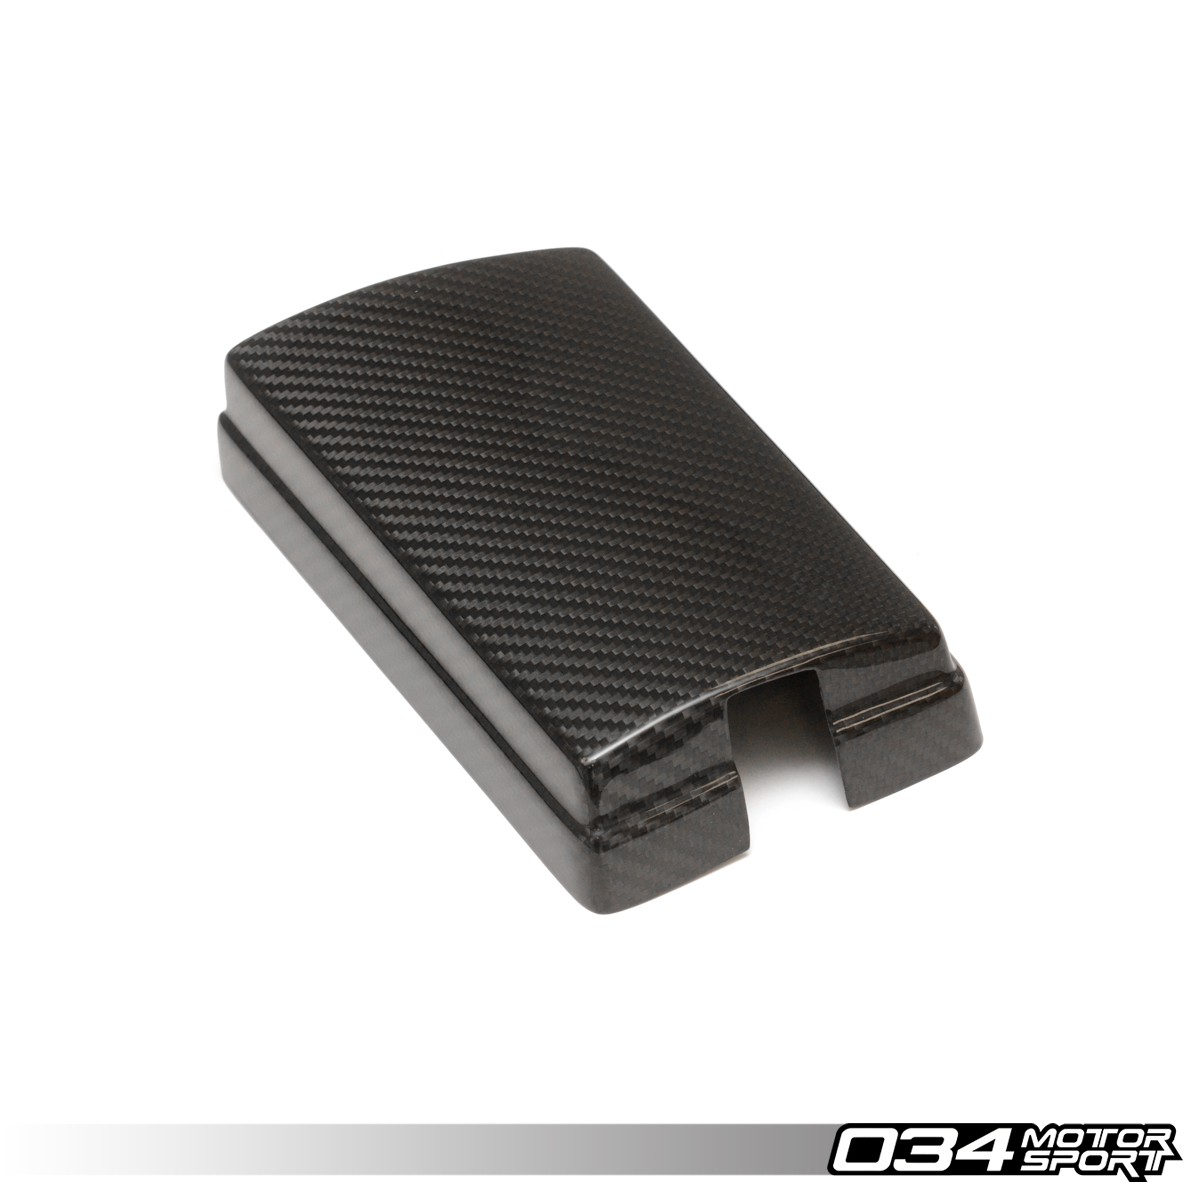 034motorsport carbon fiber fuse box cover audi 8v a3 s3 volkswagen mkvii golf r gti mqb 034 1zz 0002 1 carbon fiber fuse box cover, mkvii volkswagen gti & golf r, 8v fuse box cover at beritabola.co